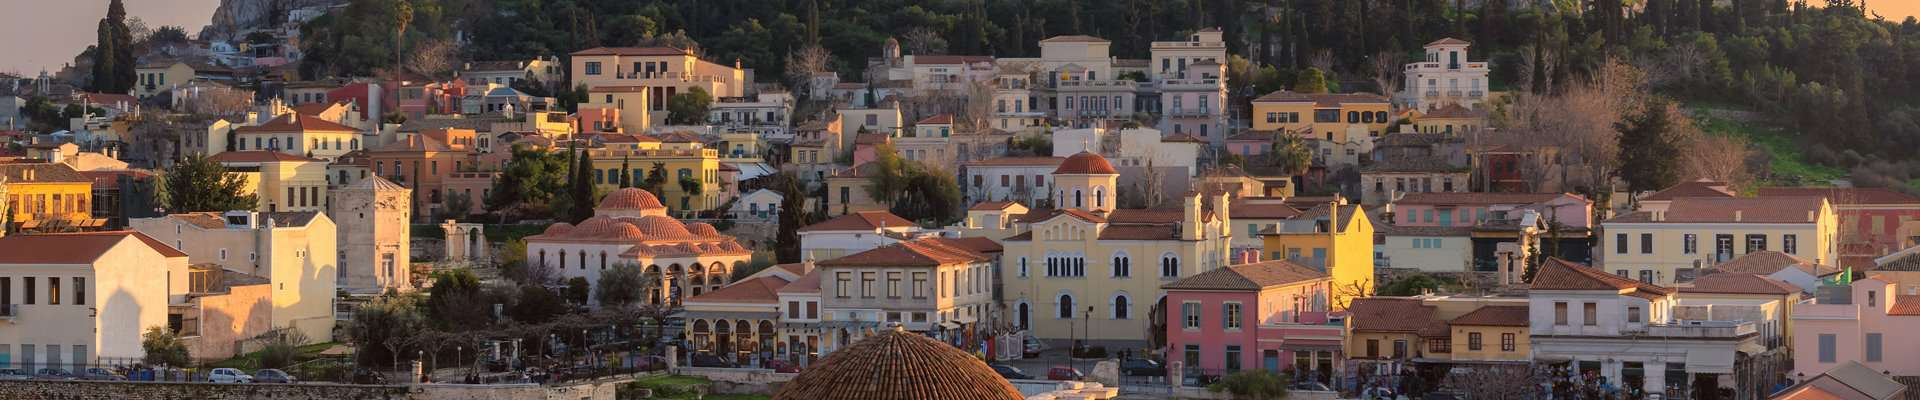 The historic district of Plaka on the slopes of the Acropolis in Athens.